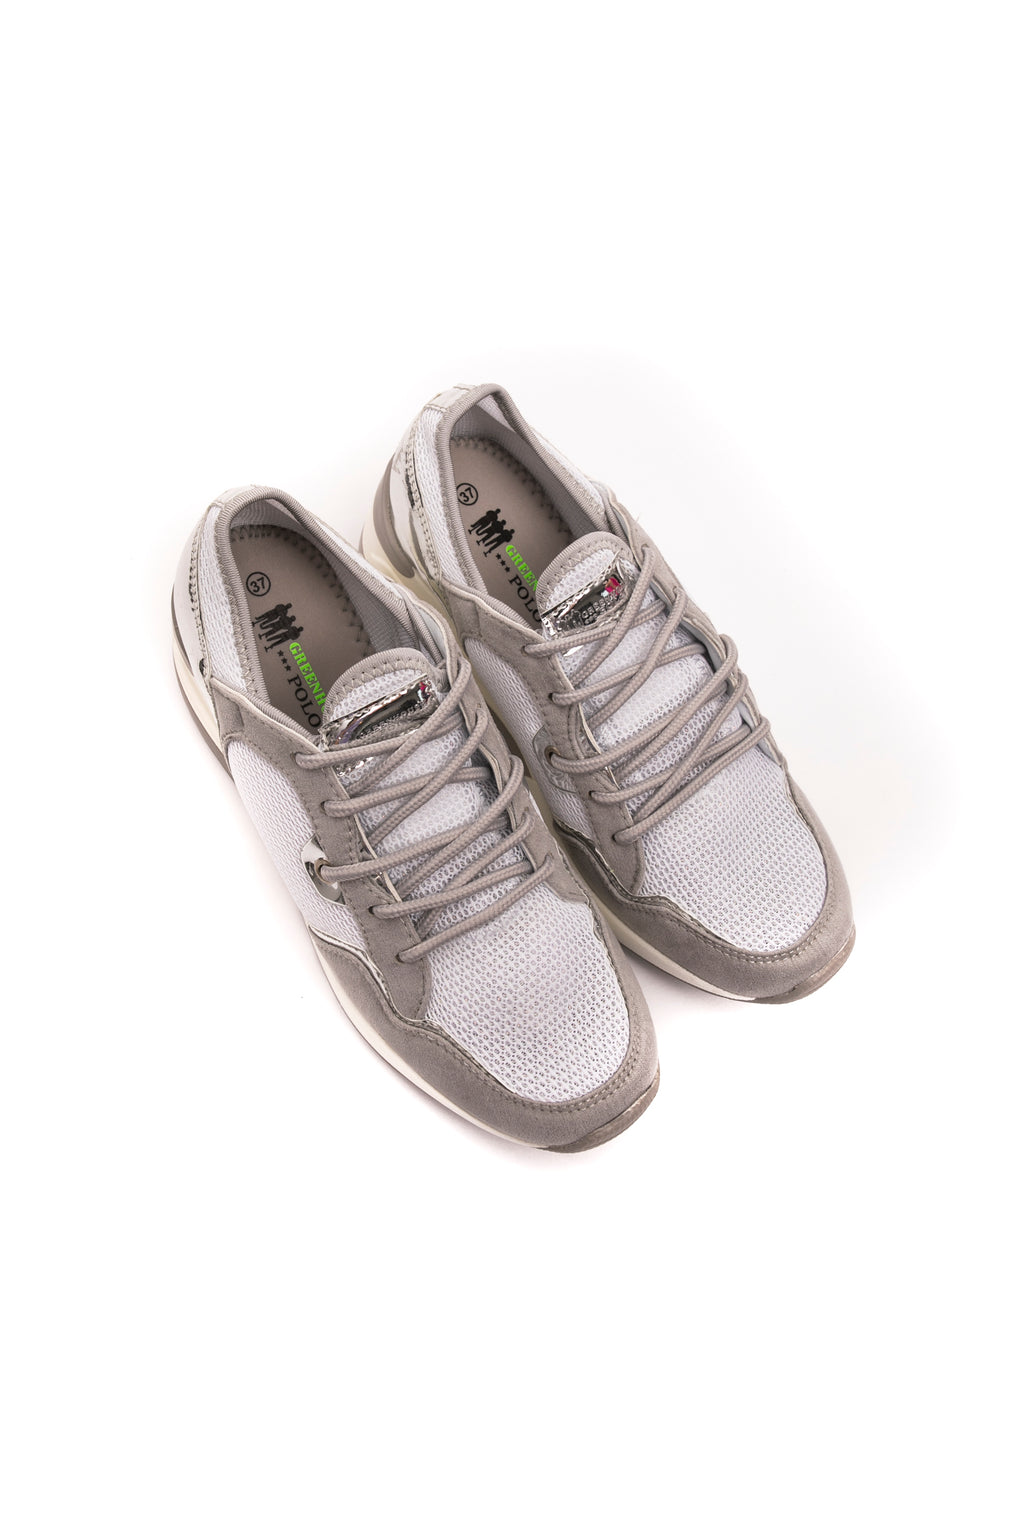 Grich Lt Grey Sneakers